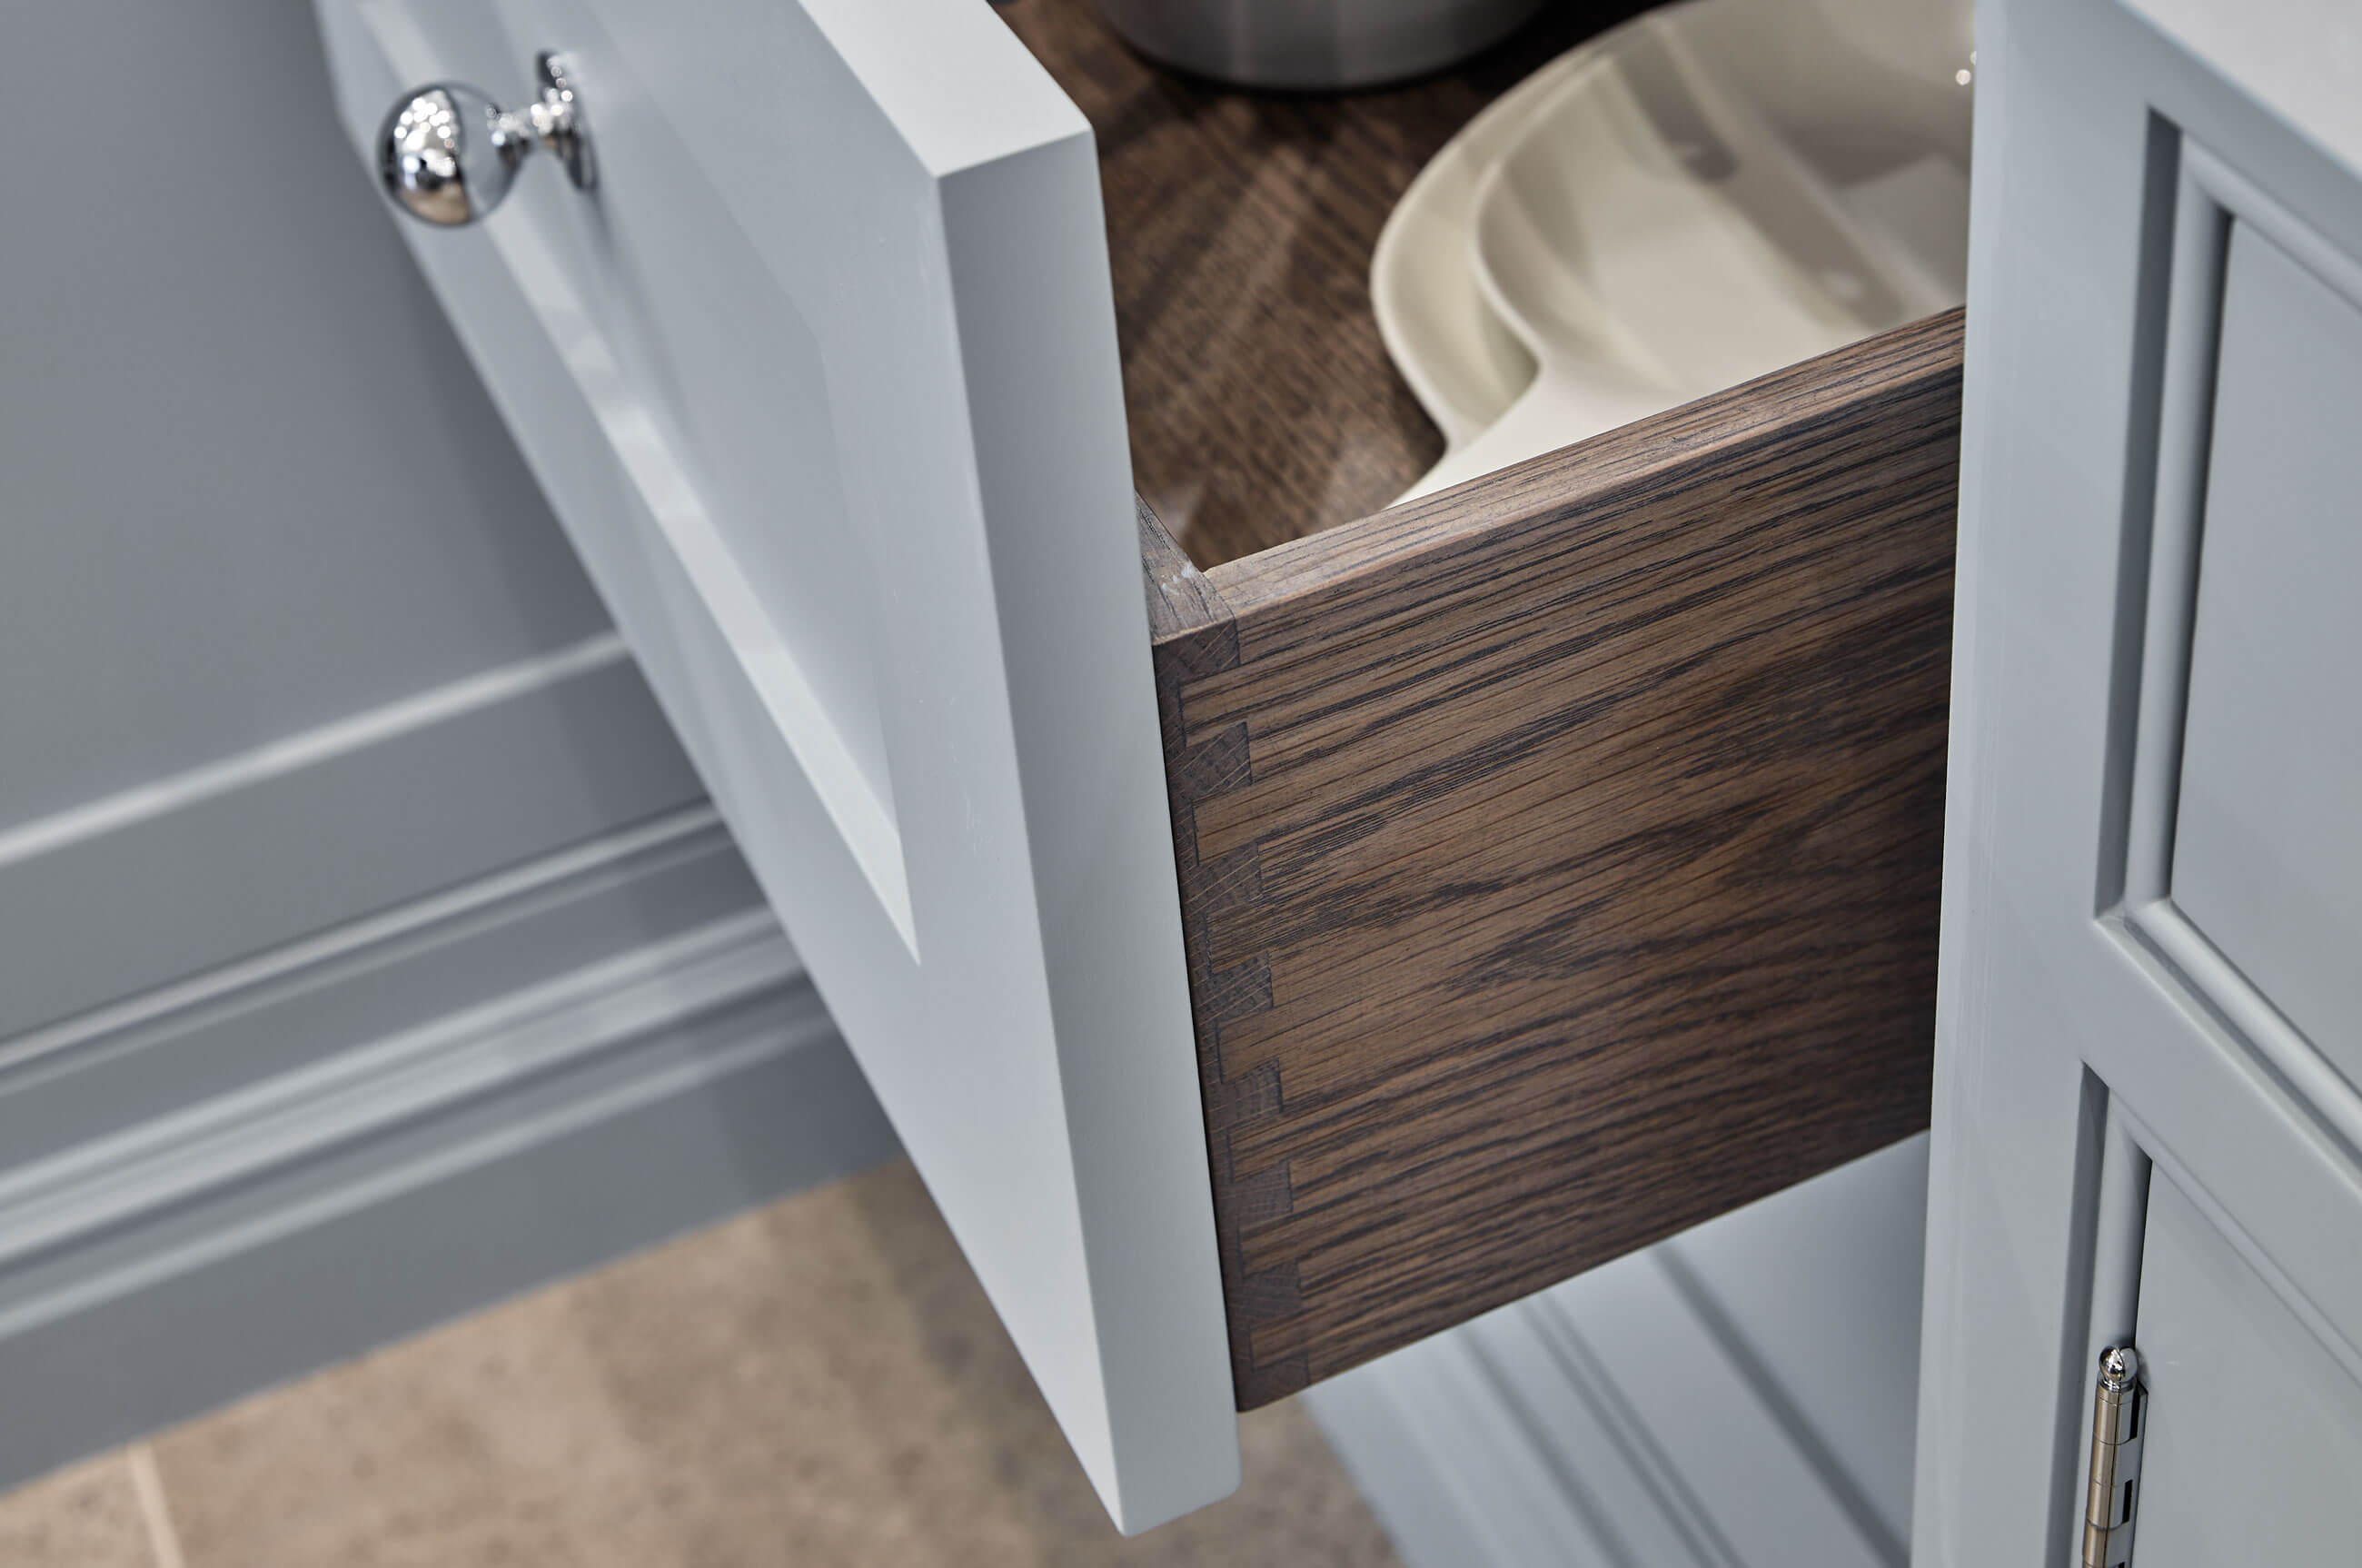 width design with fit do dovetail features full howley superior islington kitchen look only longevity tom drawers in beautifully offer the also overall they drawer not strength and aesthetics our